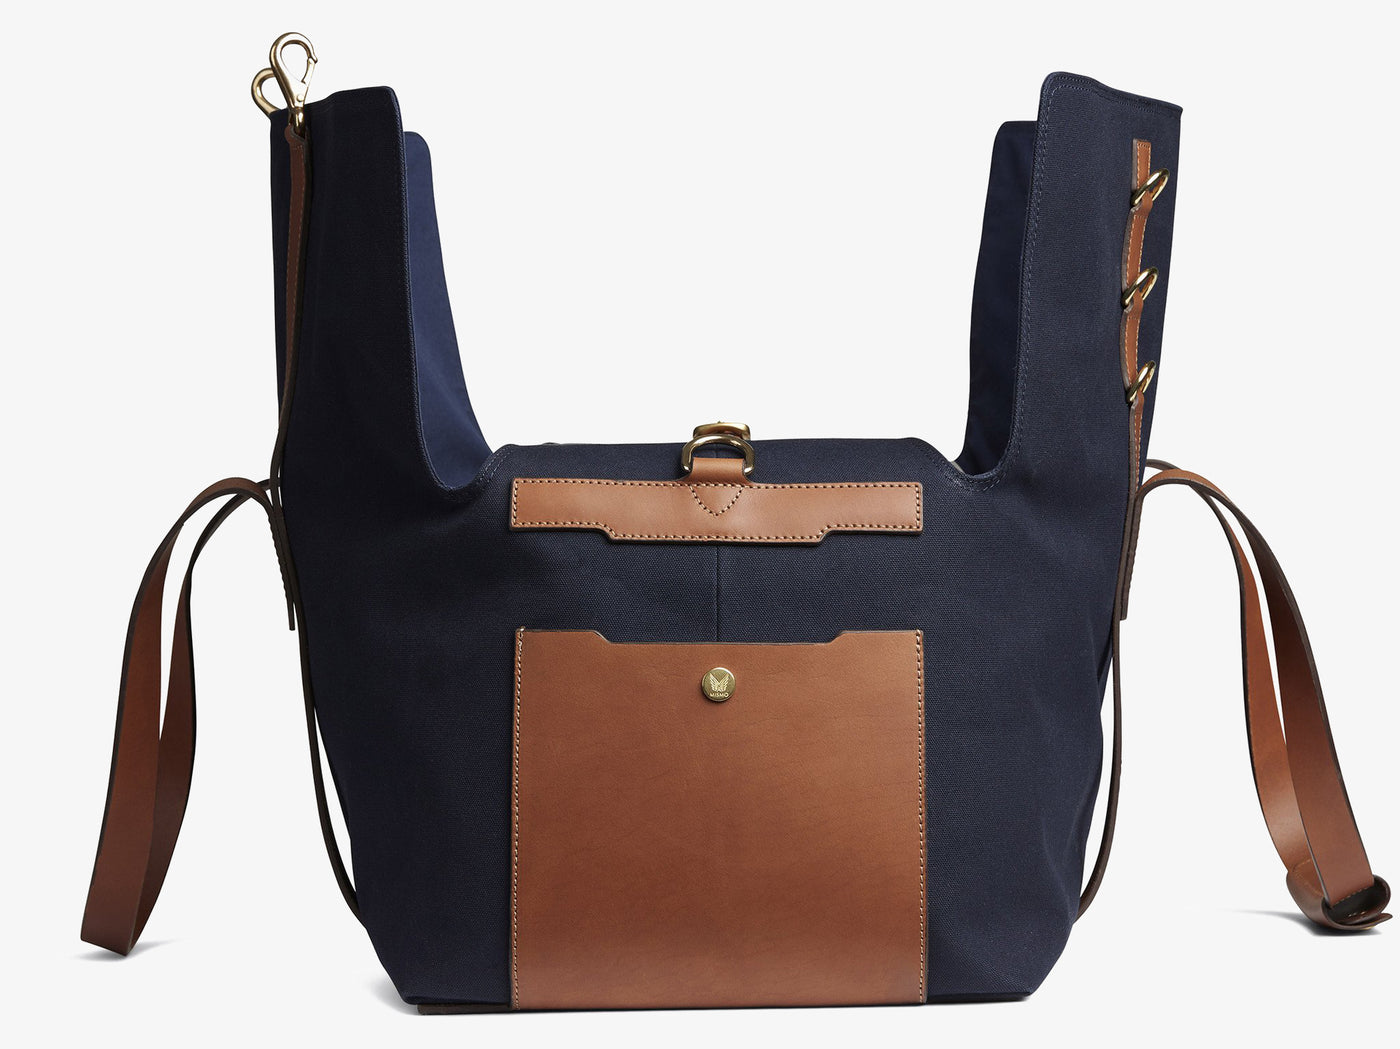 M/S Supply - Midnight blue/Cuoio -  Travel bag - Mismo